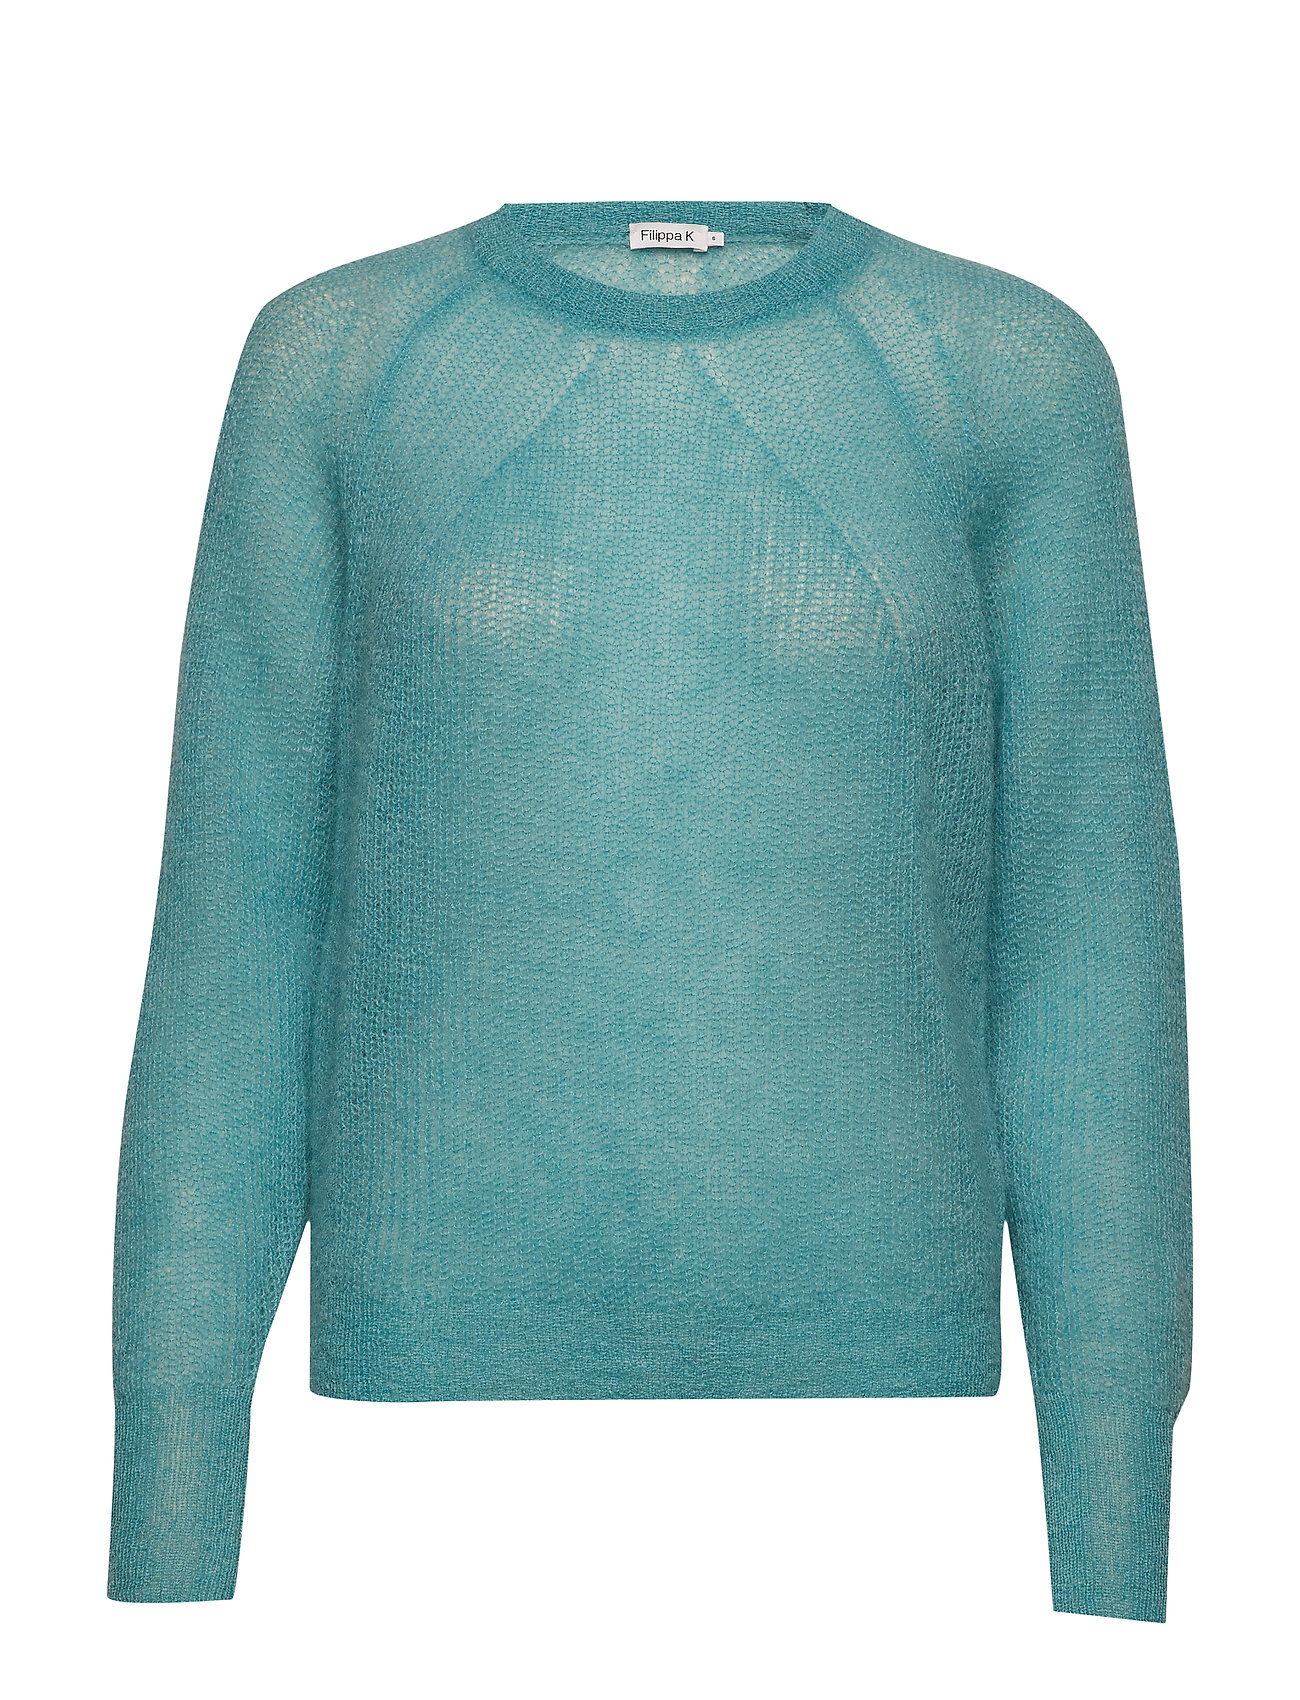 Filippa K Mohair R-neck Sweater - OCEAN REEF